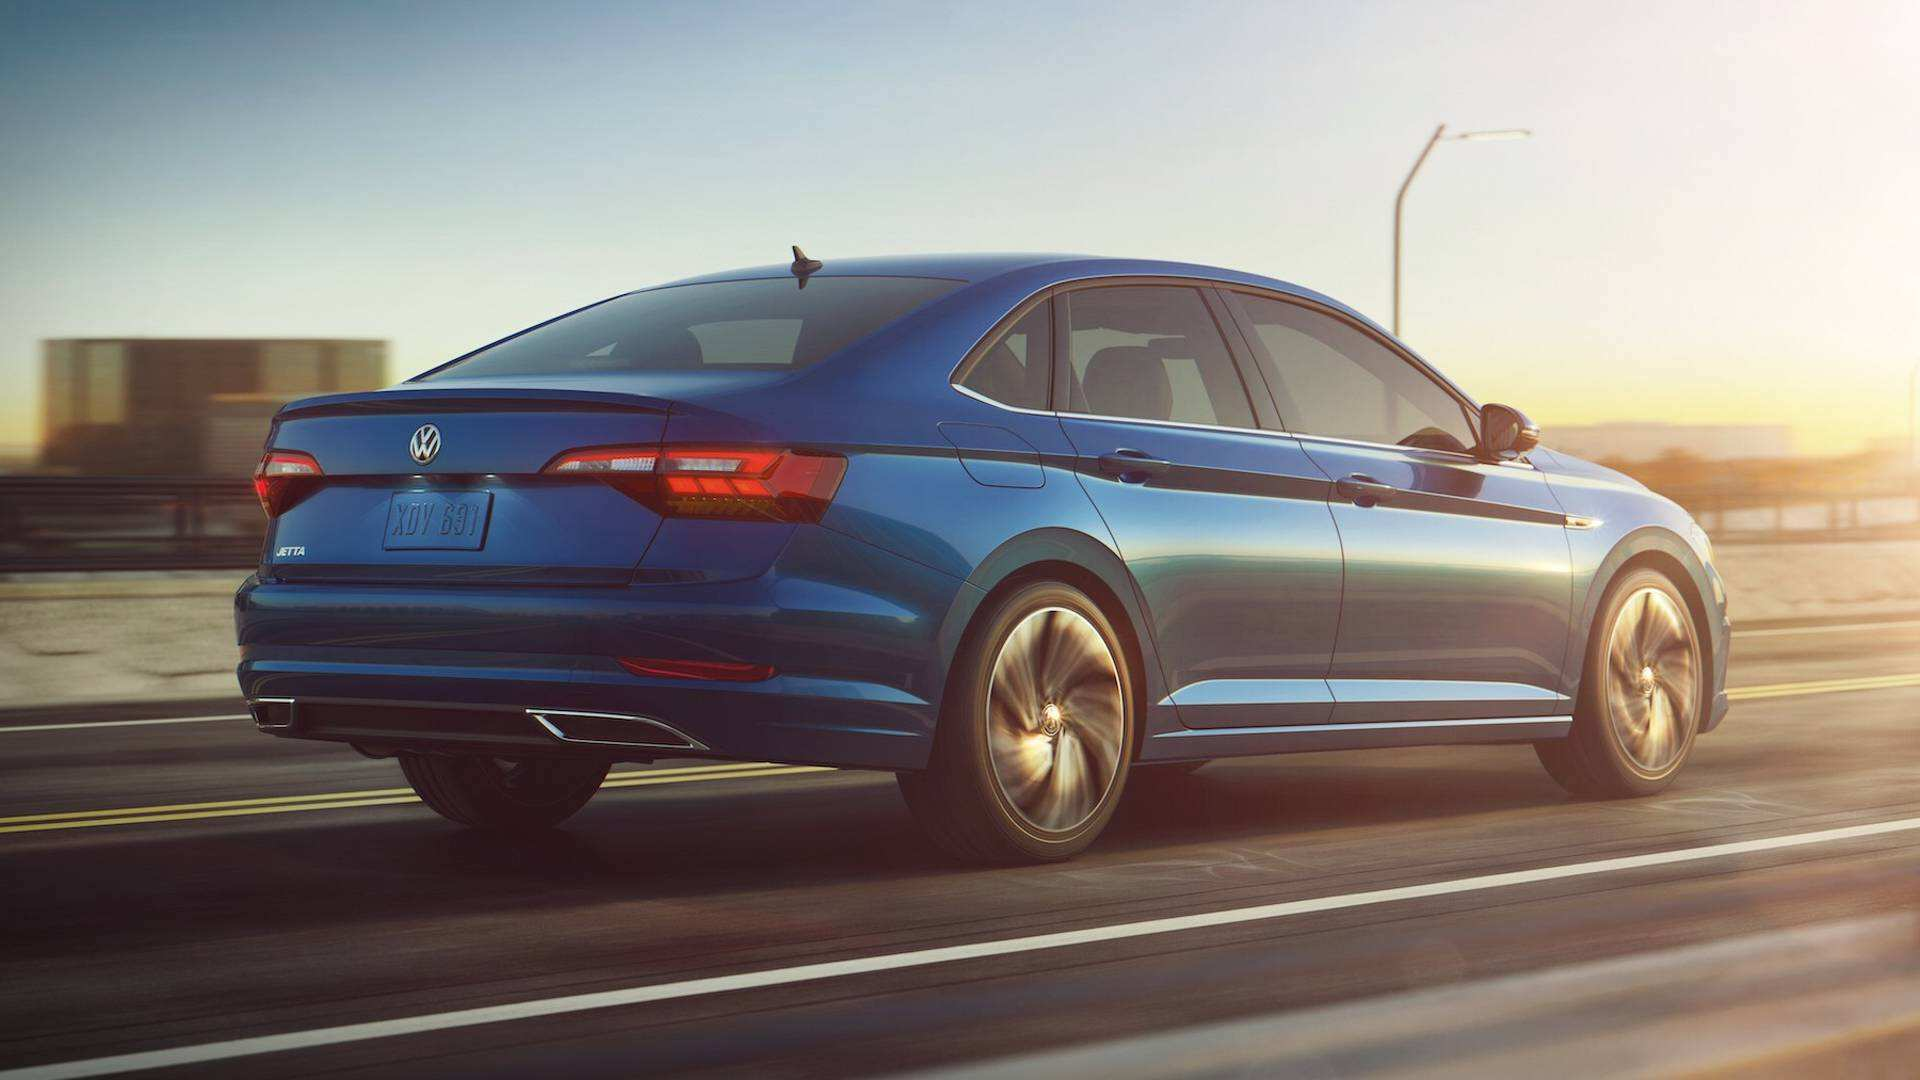 45 Great 2020 Vw Jetta Photos for 2020 Vw Jetta